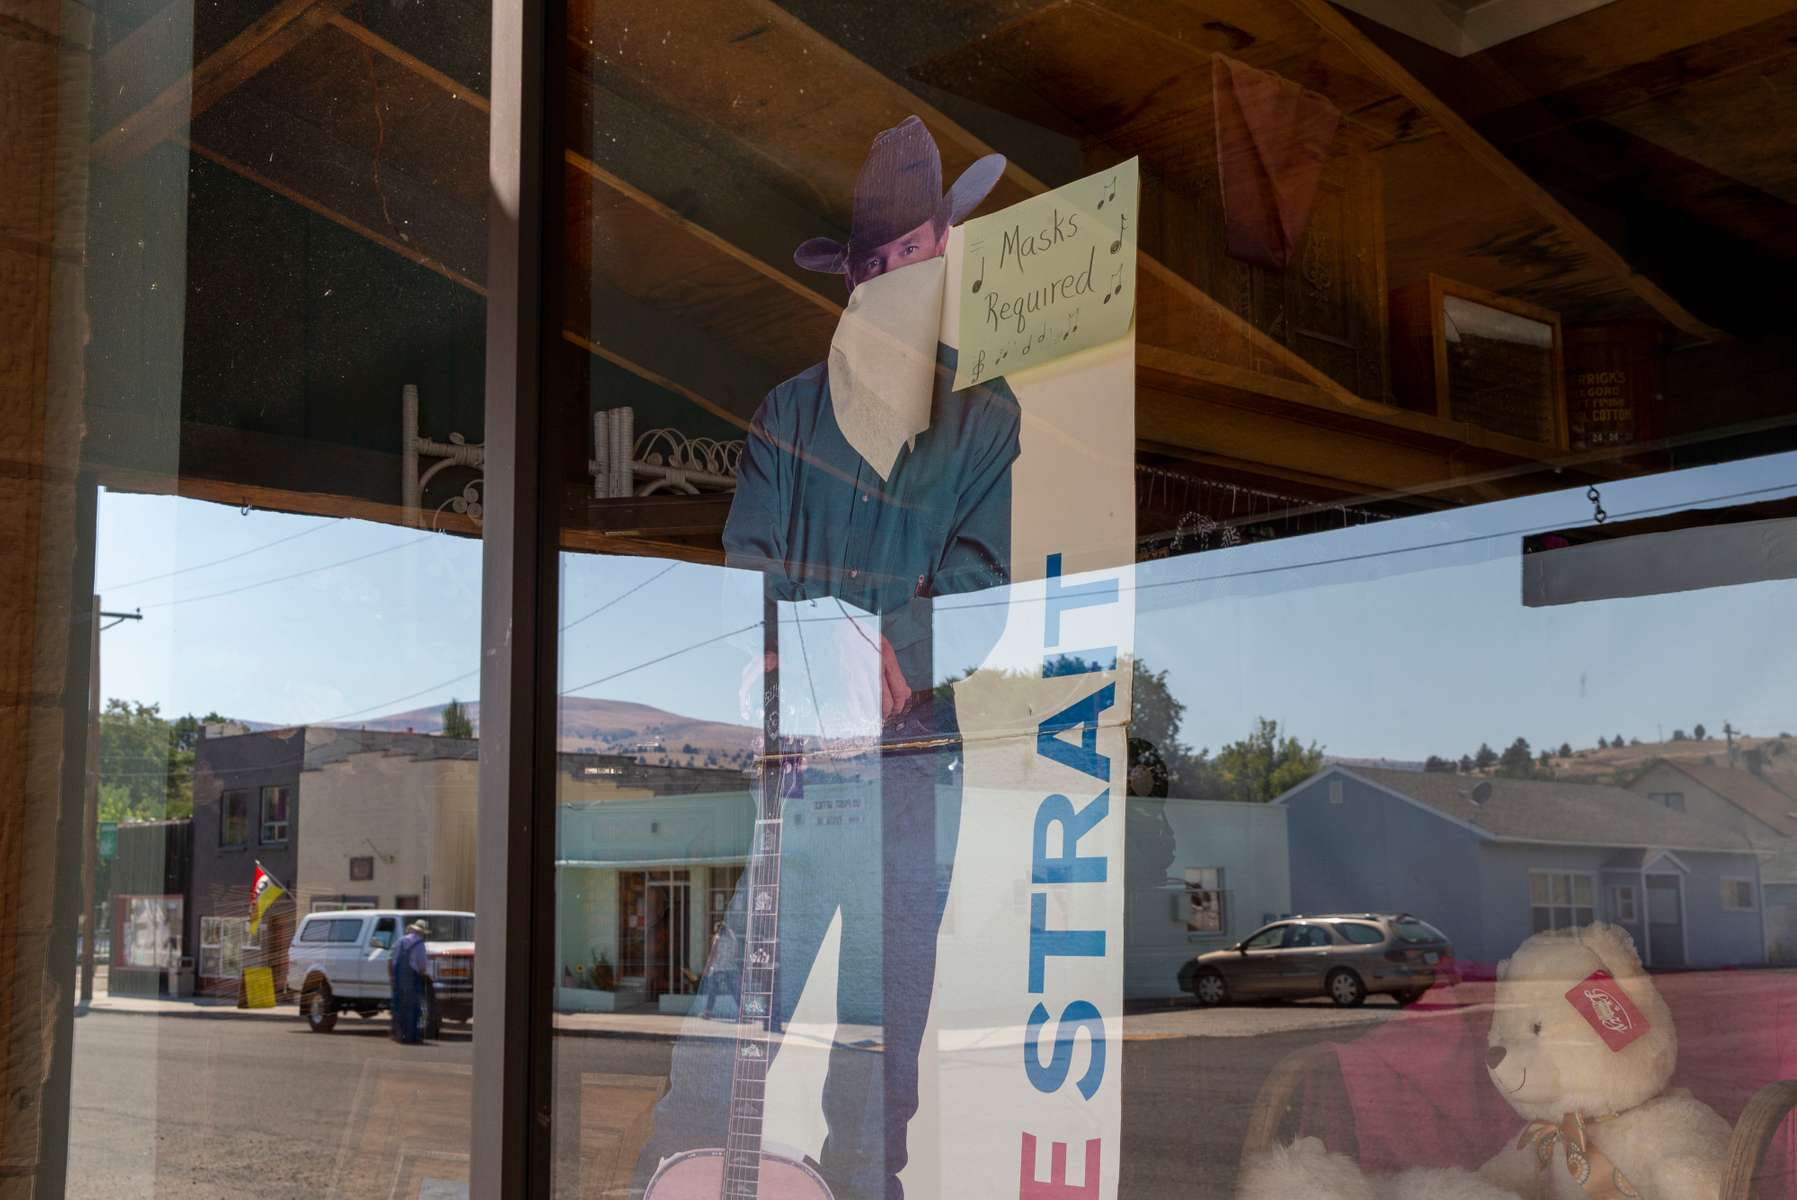 A George Strait cutout with a mask stands in the Fossil Mercantile reminding customers to wear a mask in Fossil Mercantile on September 4, 2020, in Fossil, Oregon.